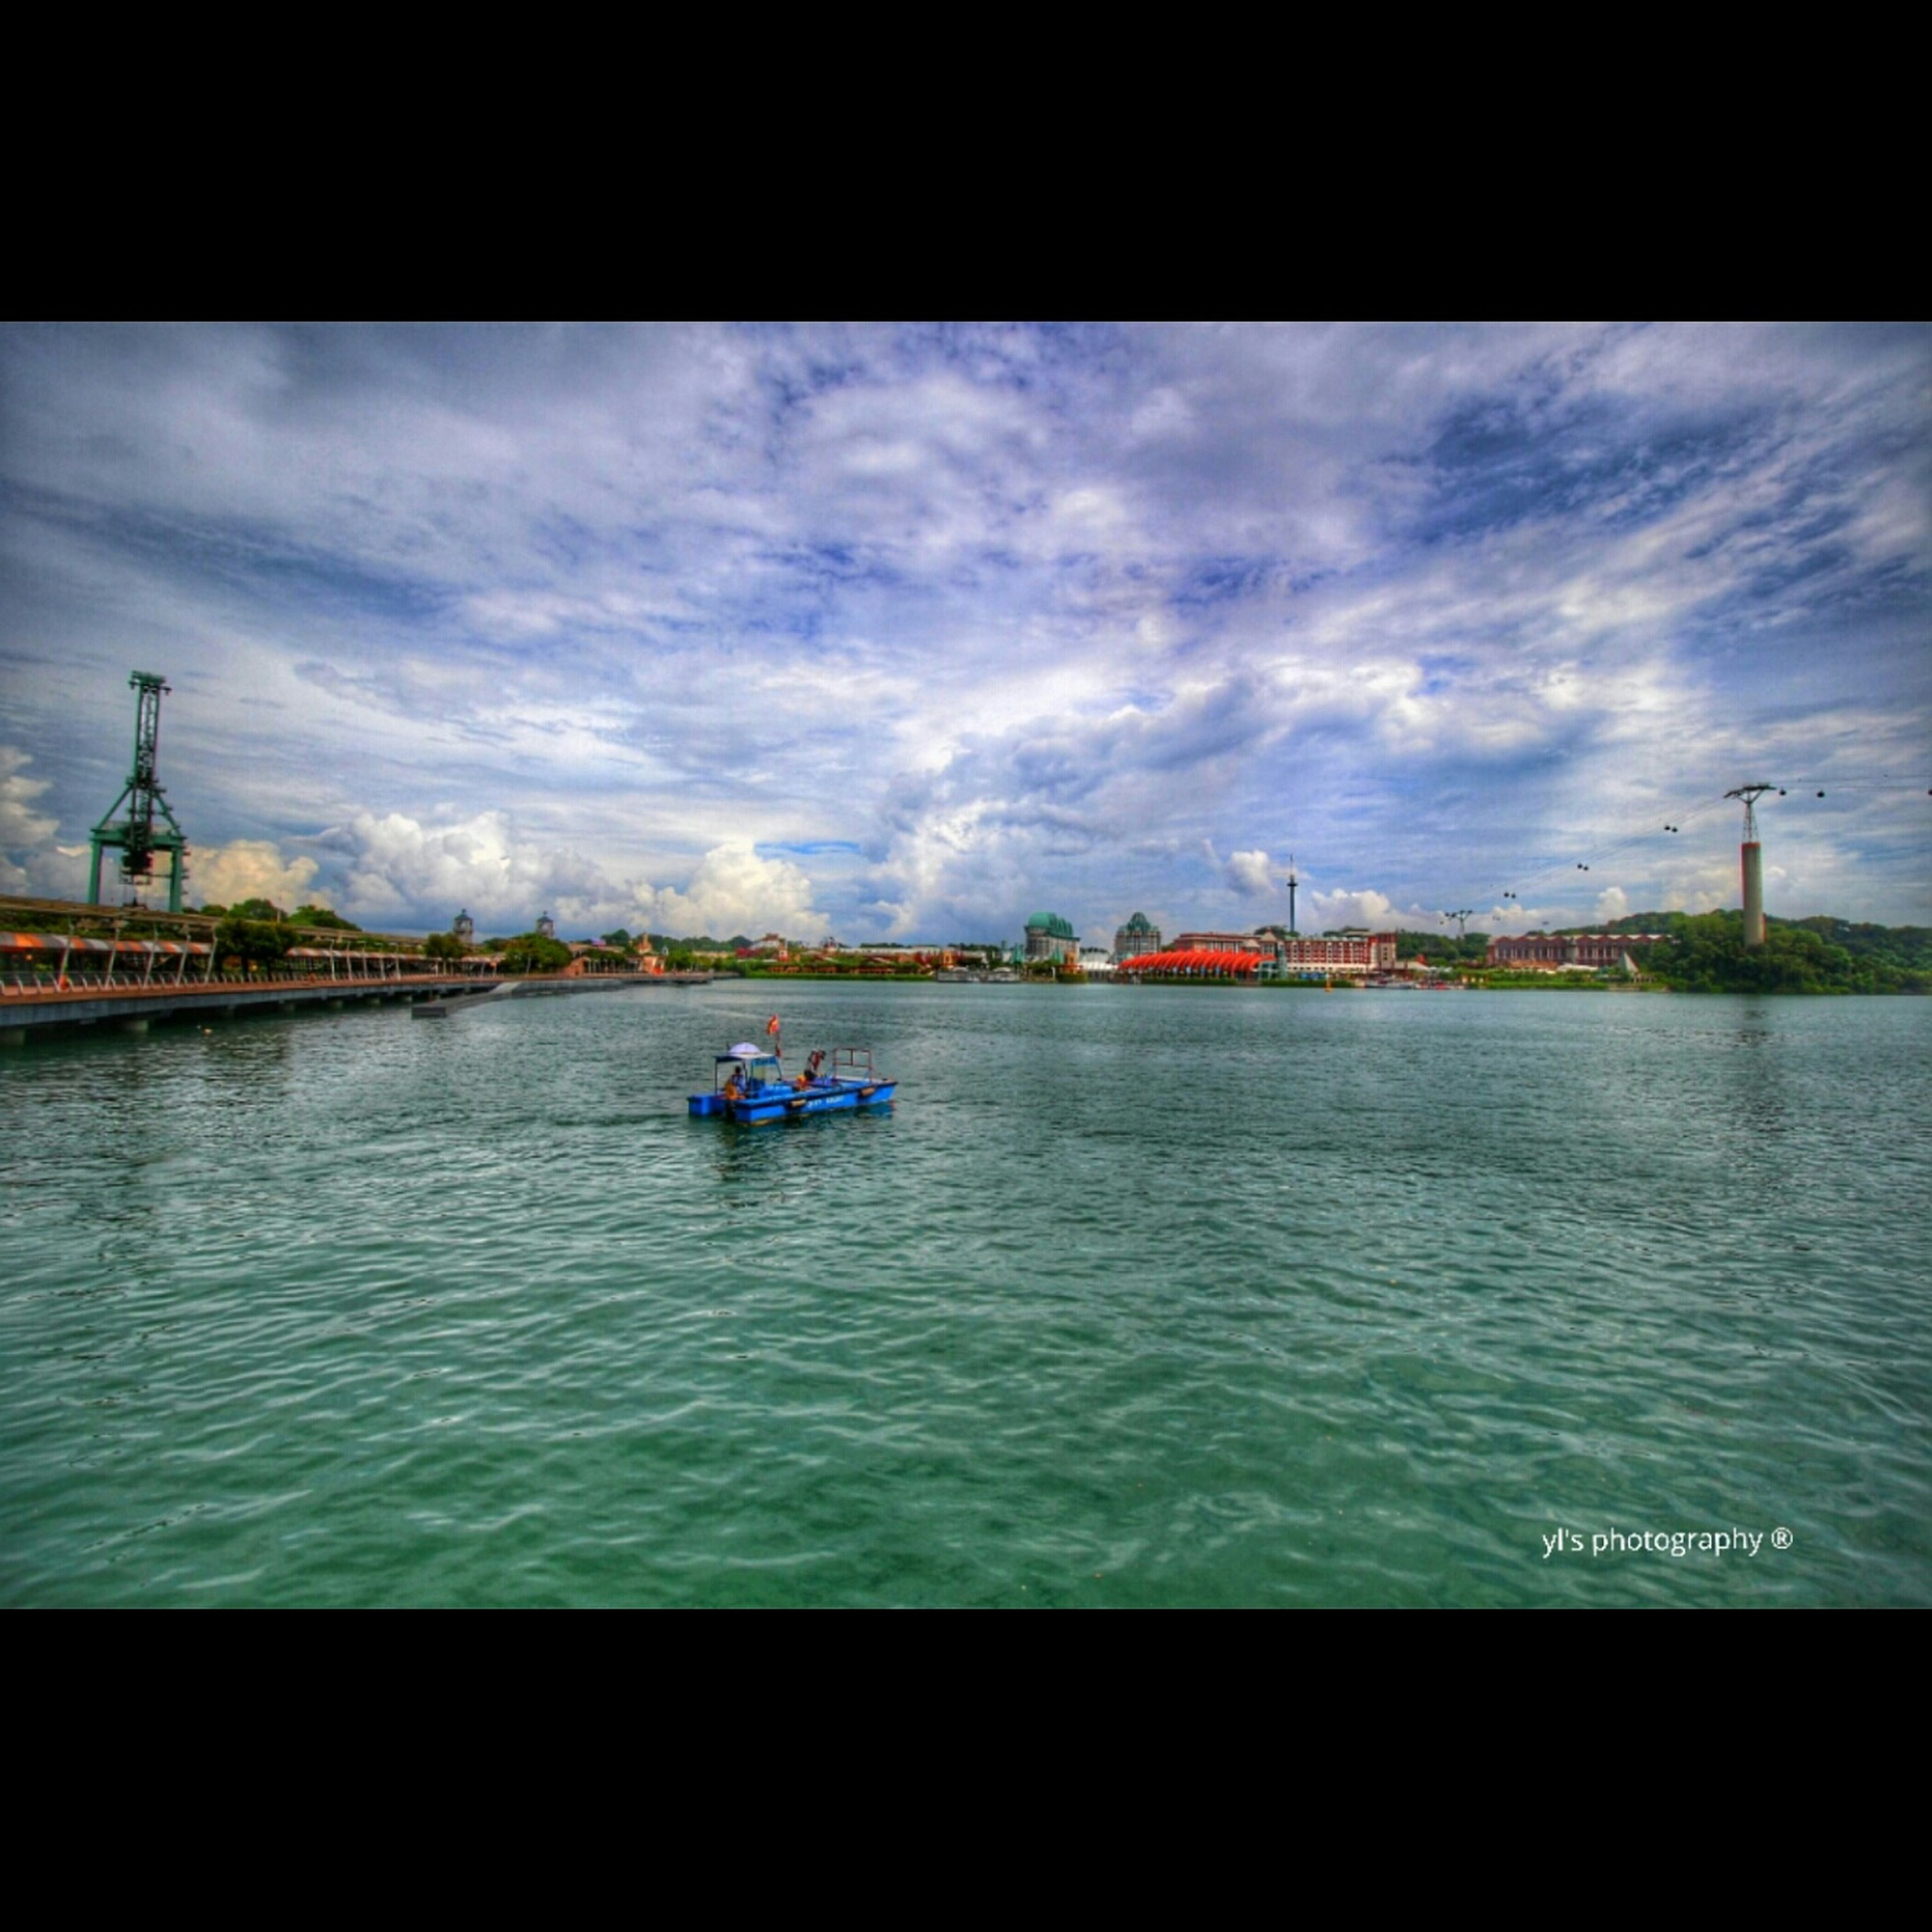 water, nautical vessel, sky, transportation, cloud - sky, mode of transport, transfer print, boat, men, lifestyles, waterfront, leisure activity, cloud, auto post production filter, river, cloudy, rippled, sea